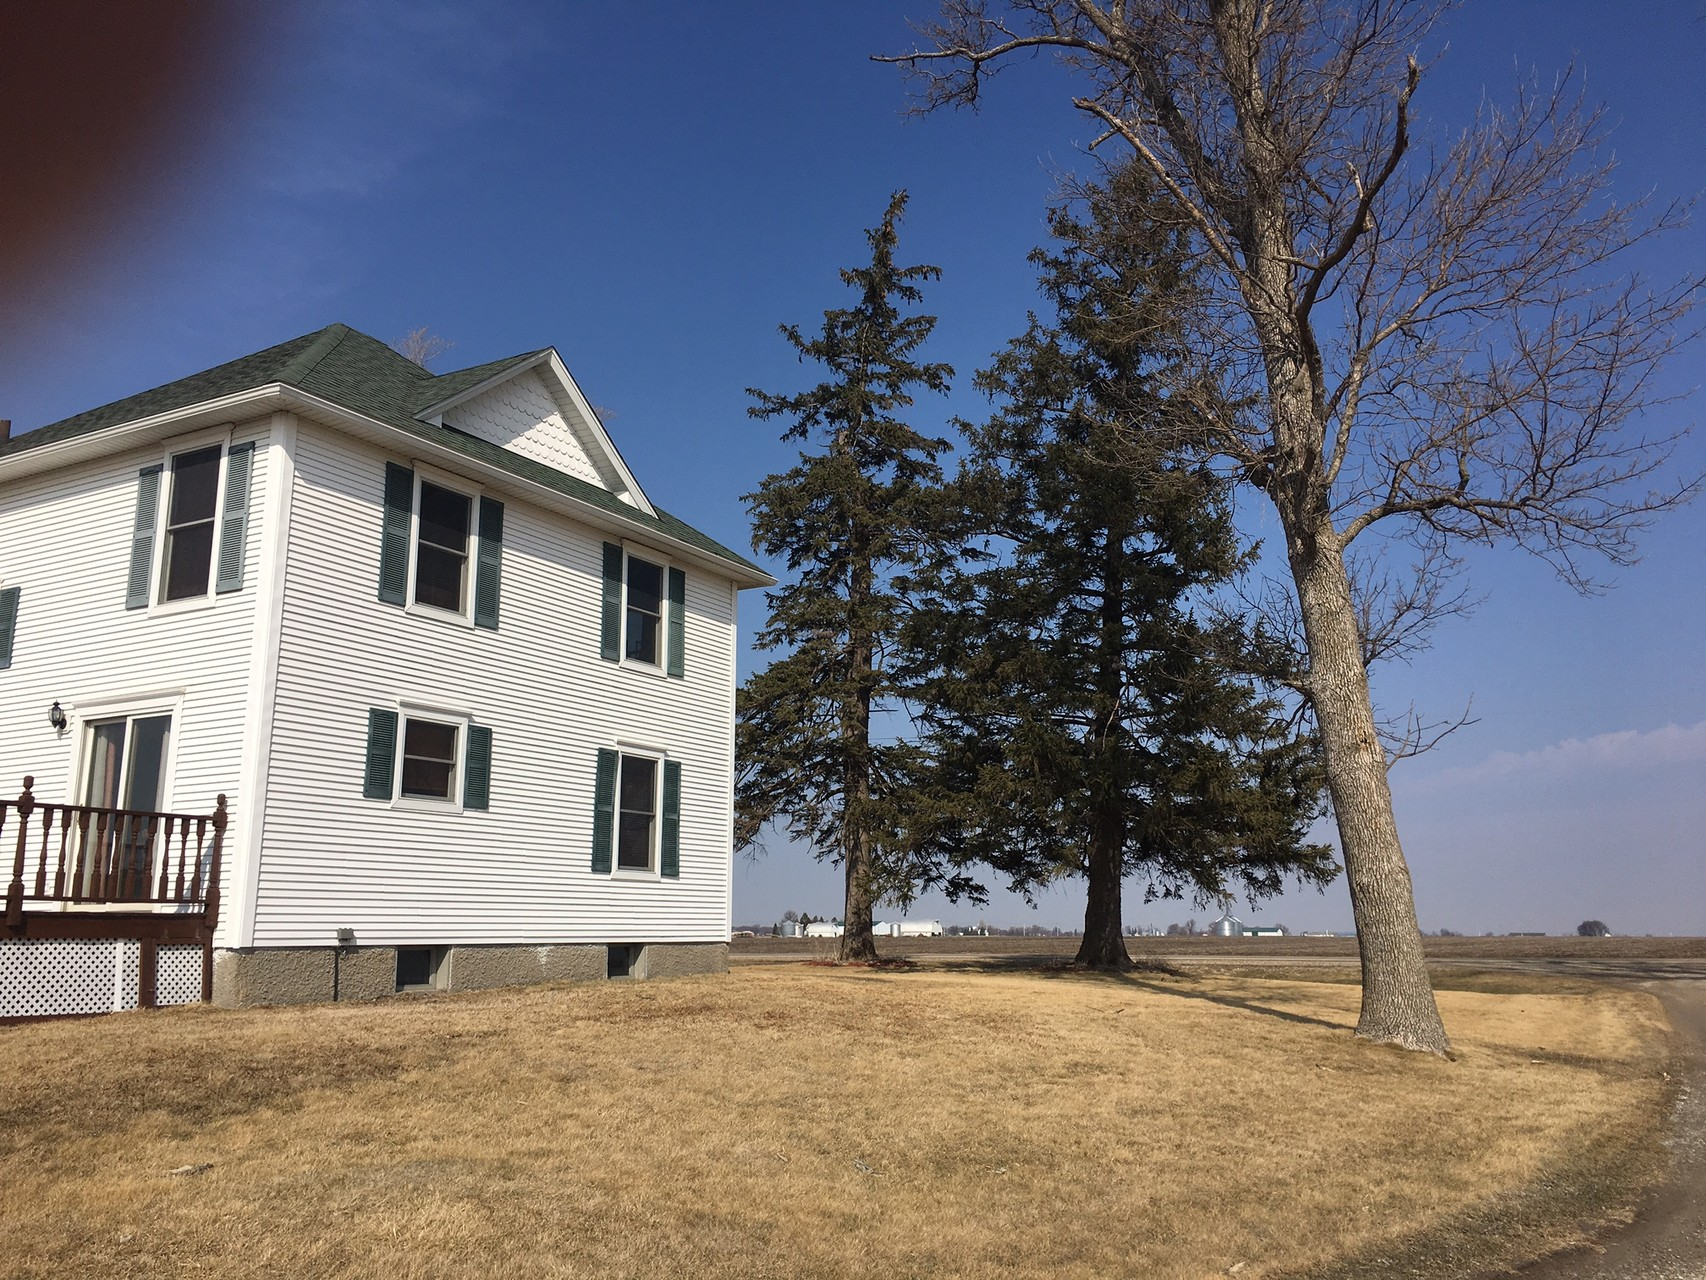 House Nick and Emily are renting near Grinnell, Iowa